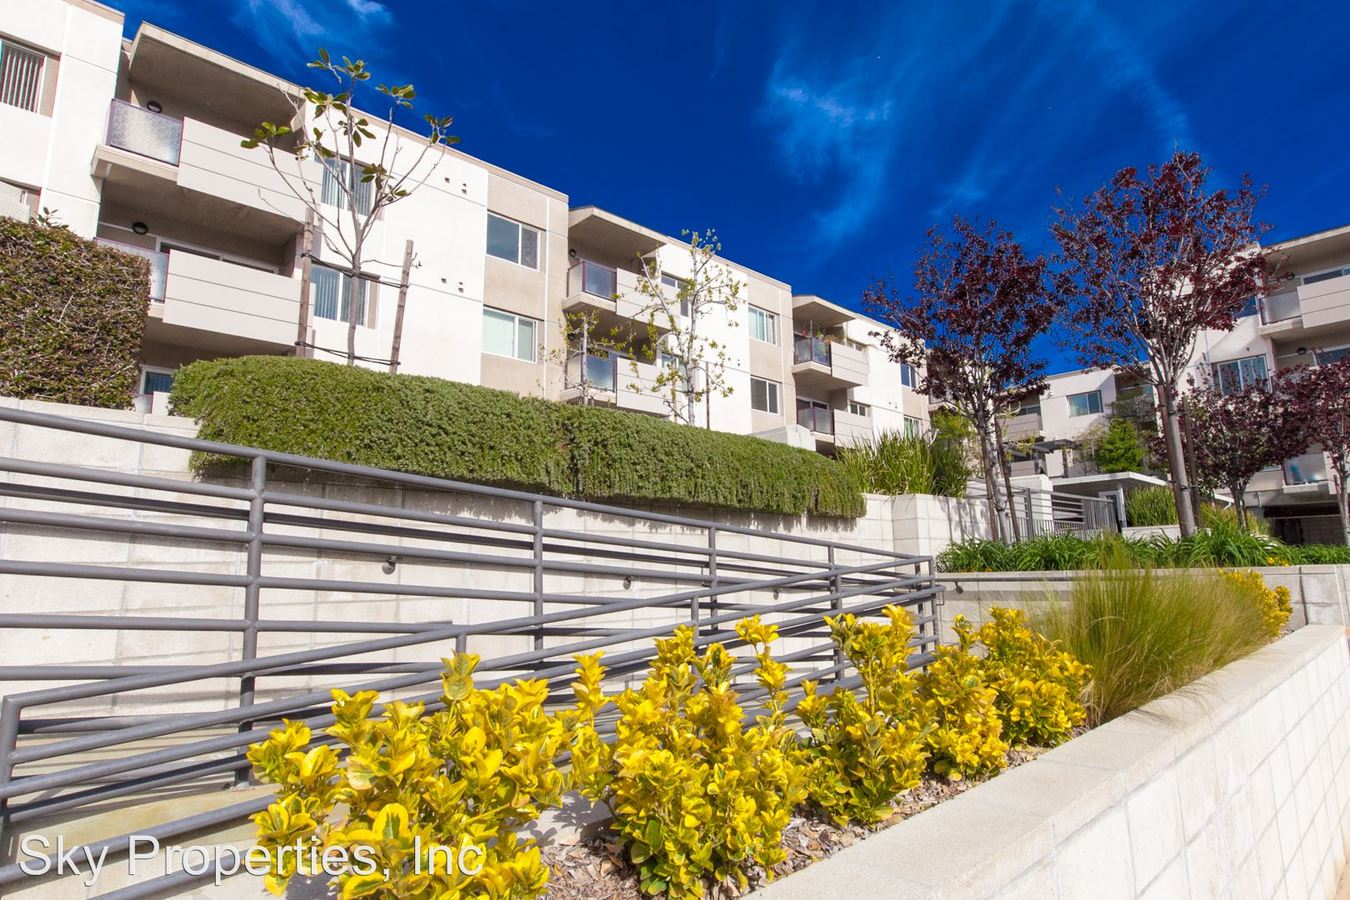 2 Bedrooms 2 Bathrooms Apartment for rent at 3400 Cahuenga Blvd in Los Angeles, CA